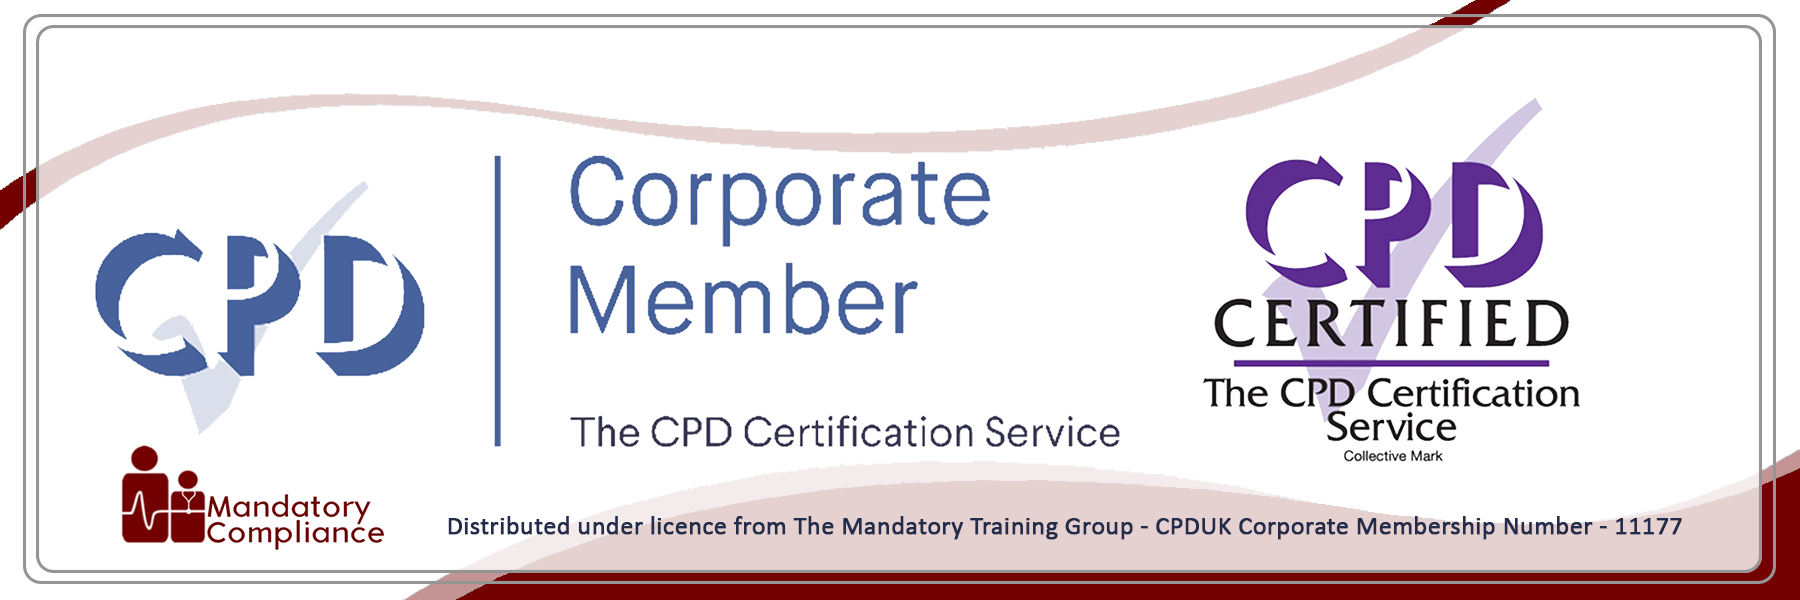 Managing your Mental Health and Well Being - Online Training Courses - Mandatory Compliance UK -